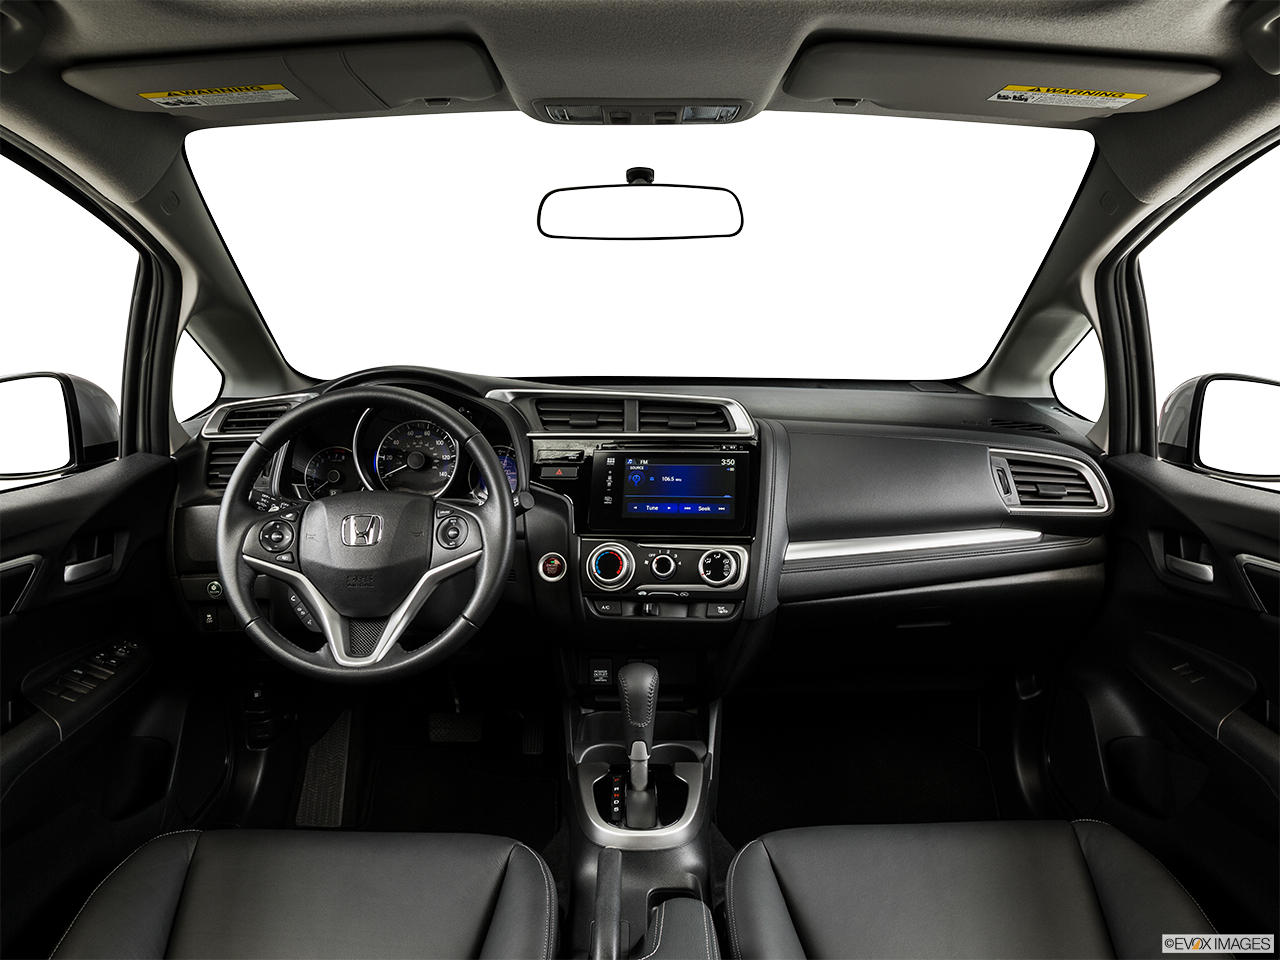 of interior updated in hasn already honda revealed all news but crosstour presented glory autoevolution model its company showing t photos has the pics